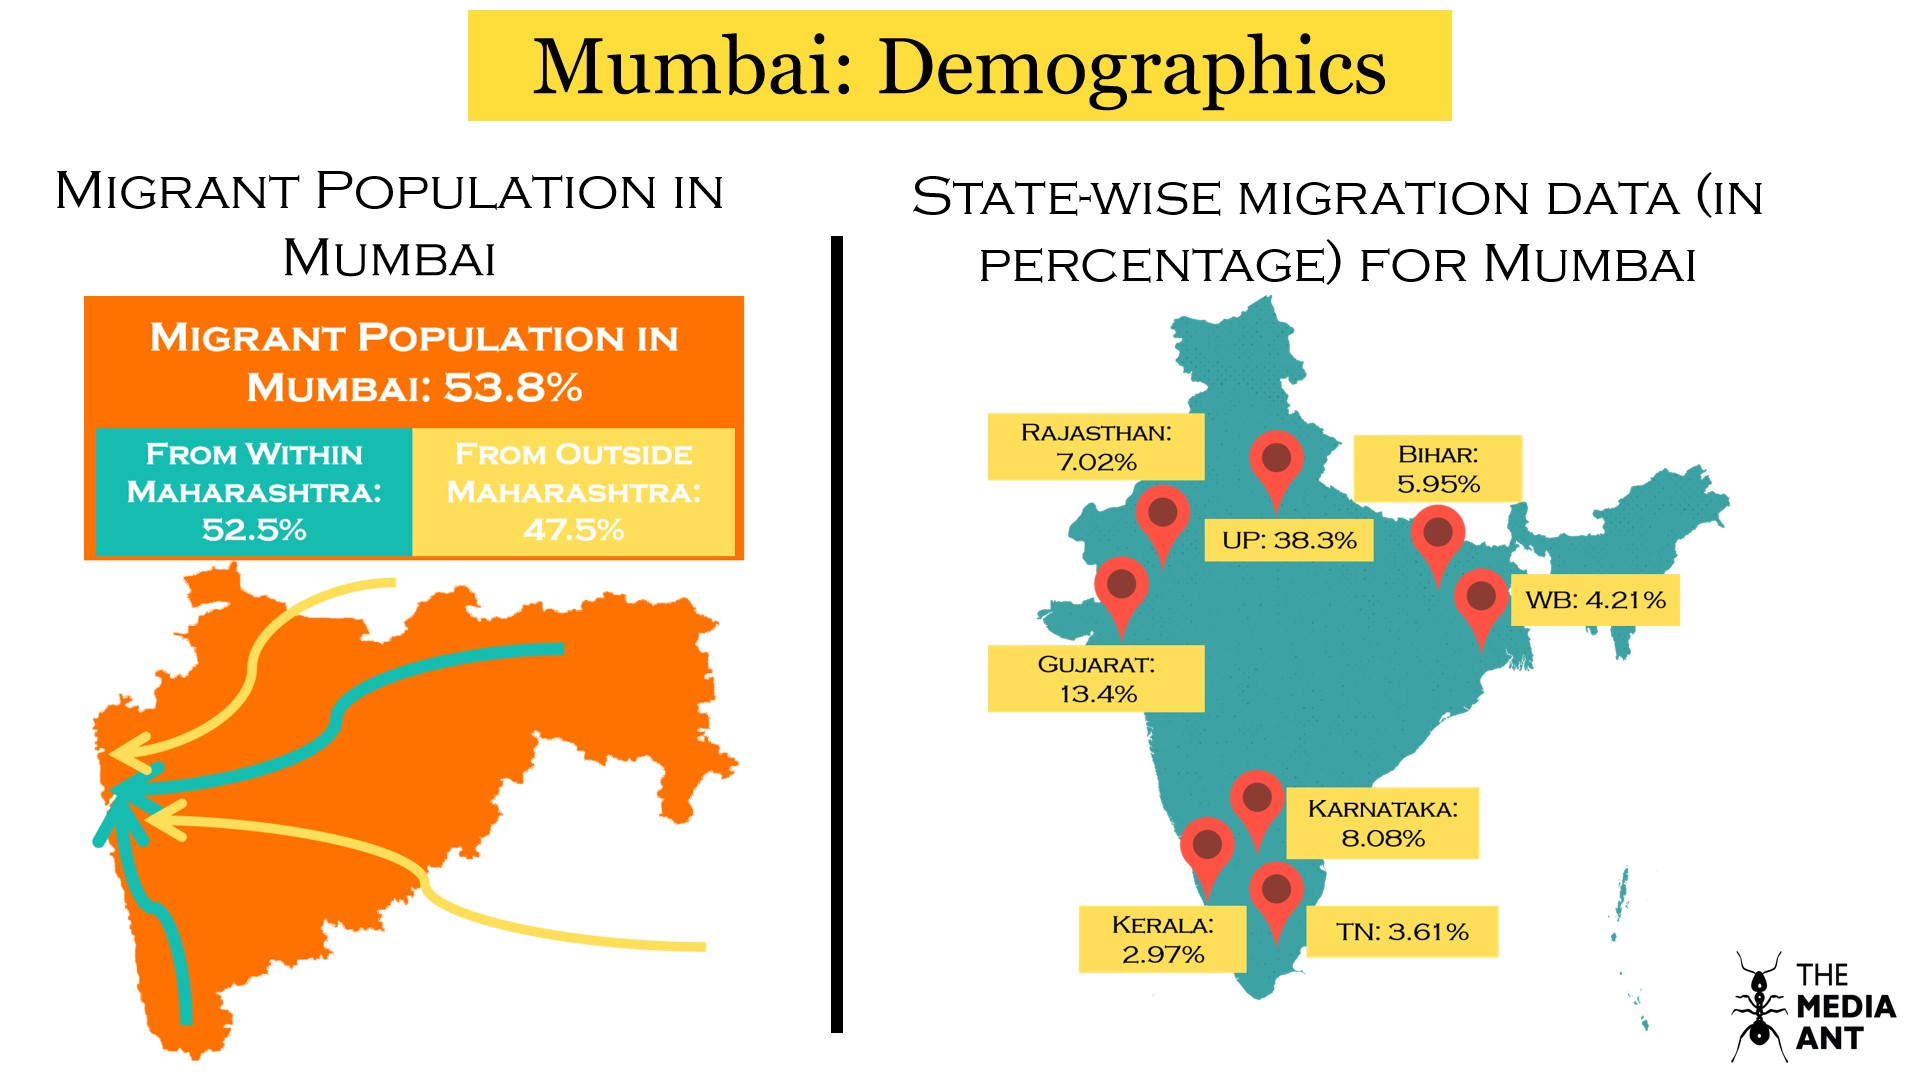 Mumbai migrant population data